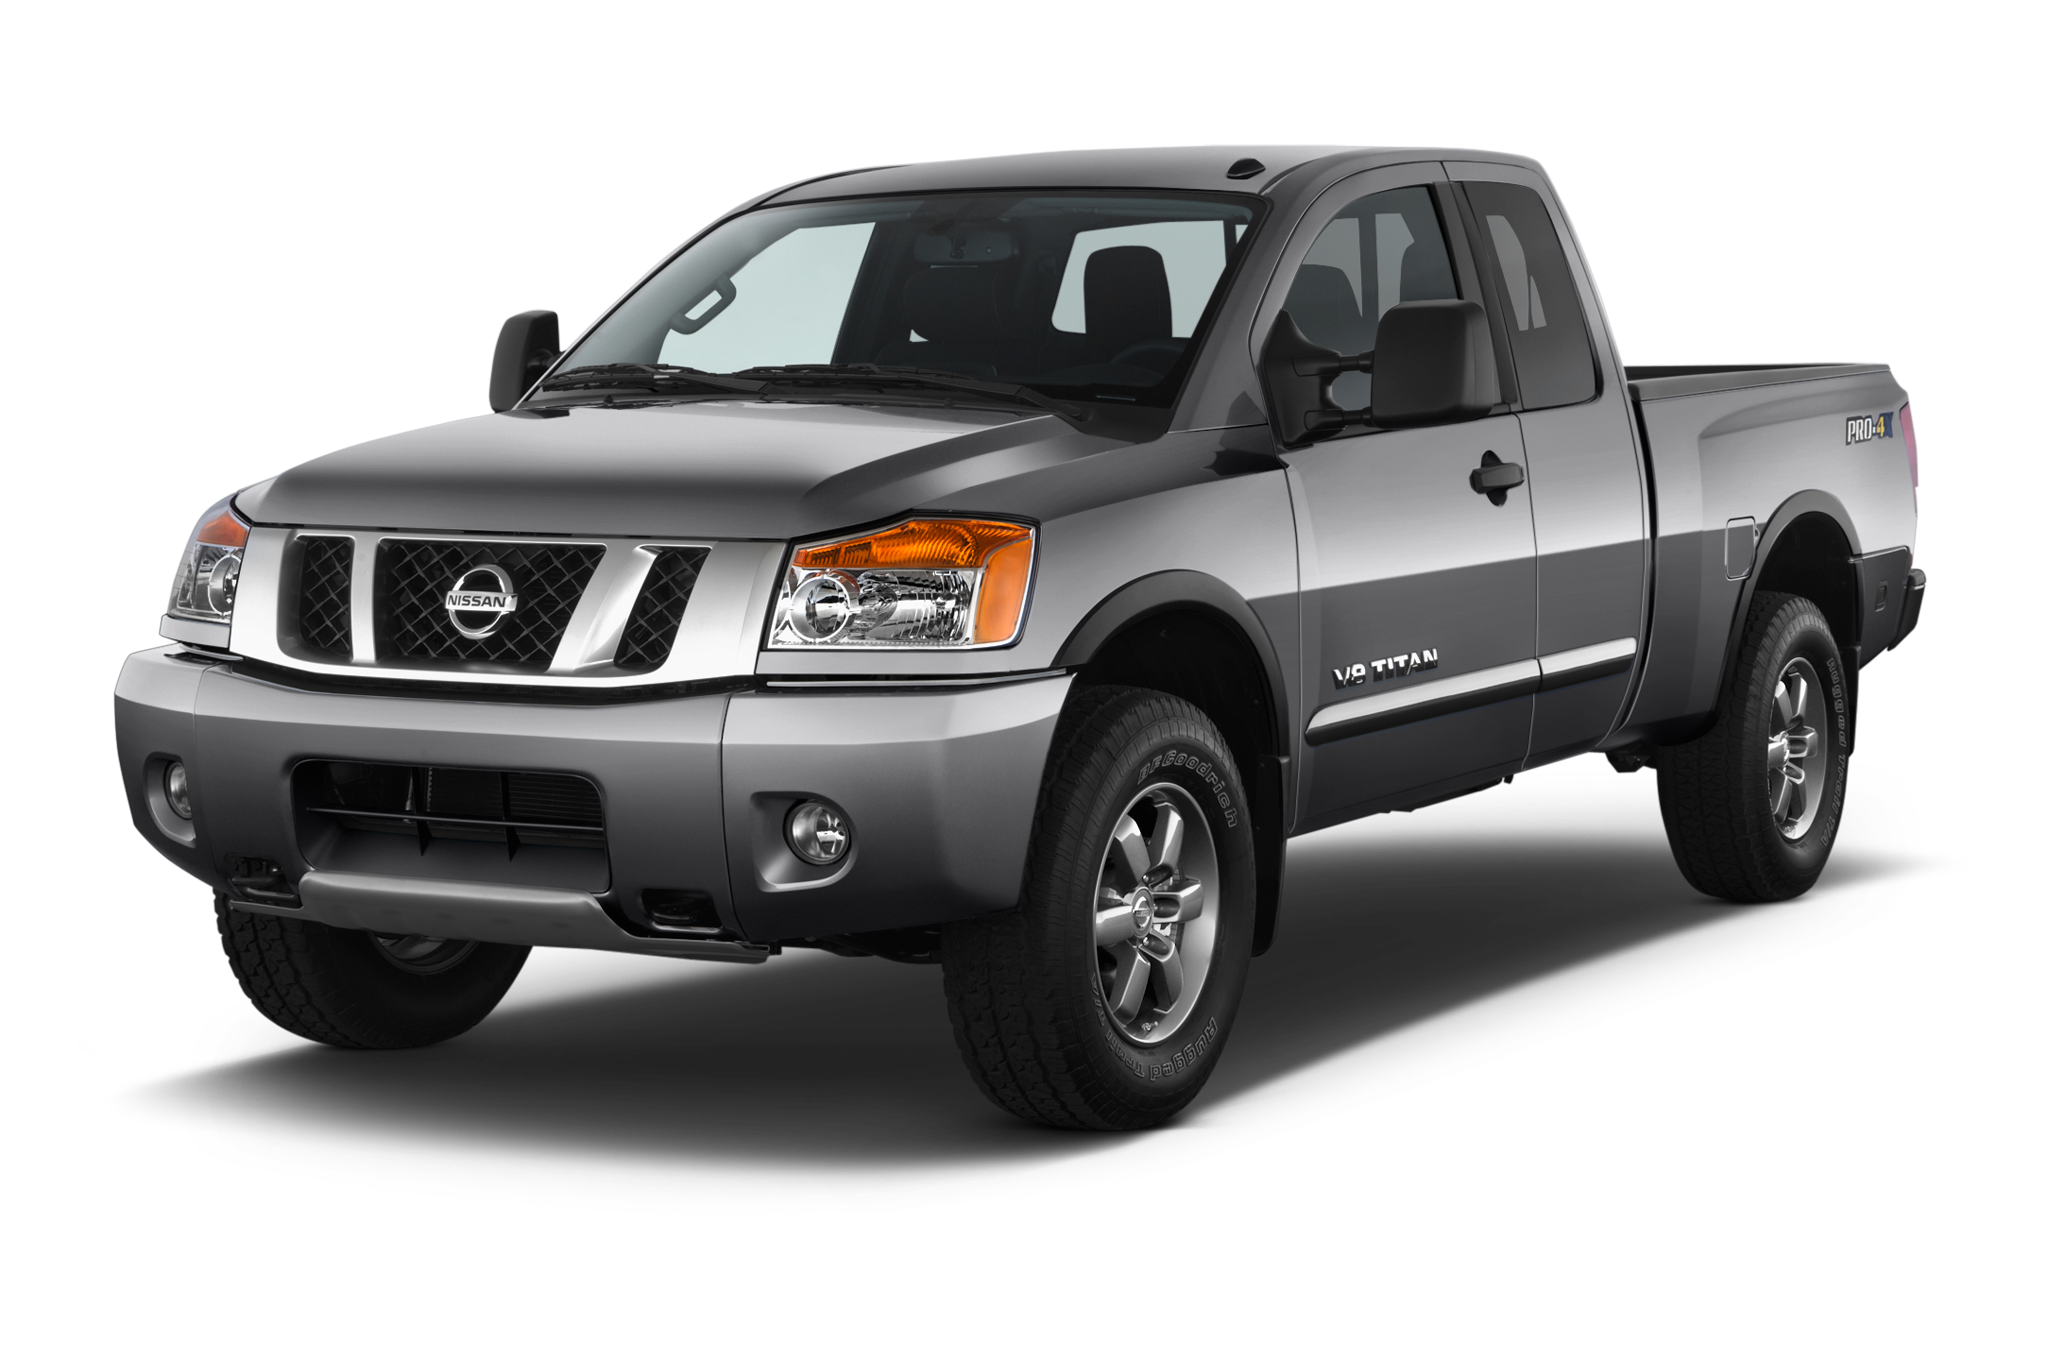 2014 nissan titan overview msn autos. Black Bedroom Furniture Sets. Home Design Ideas